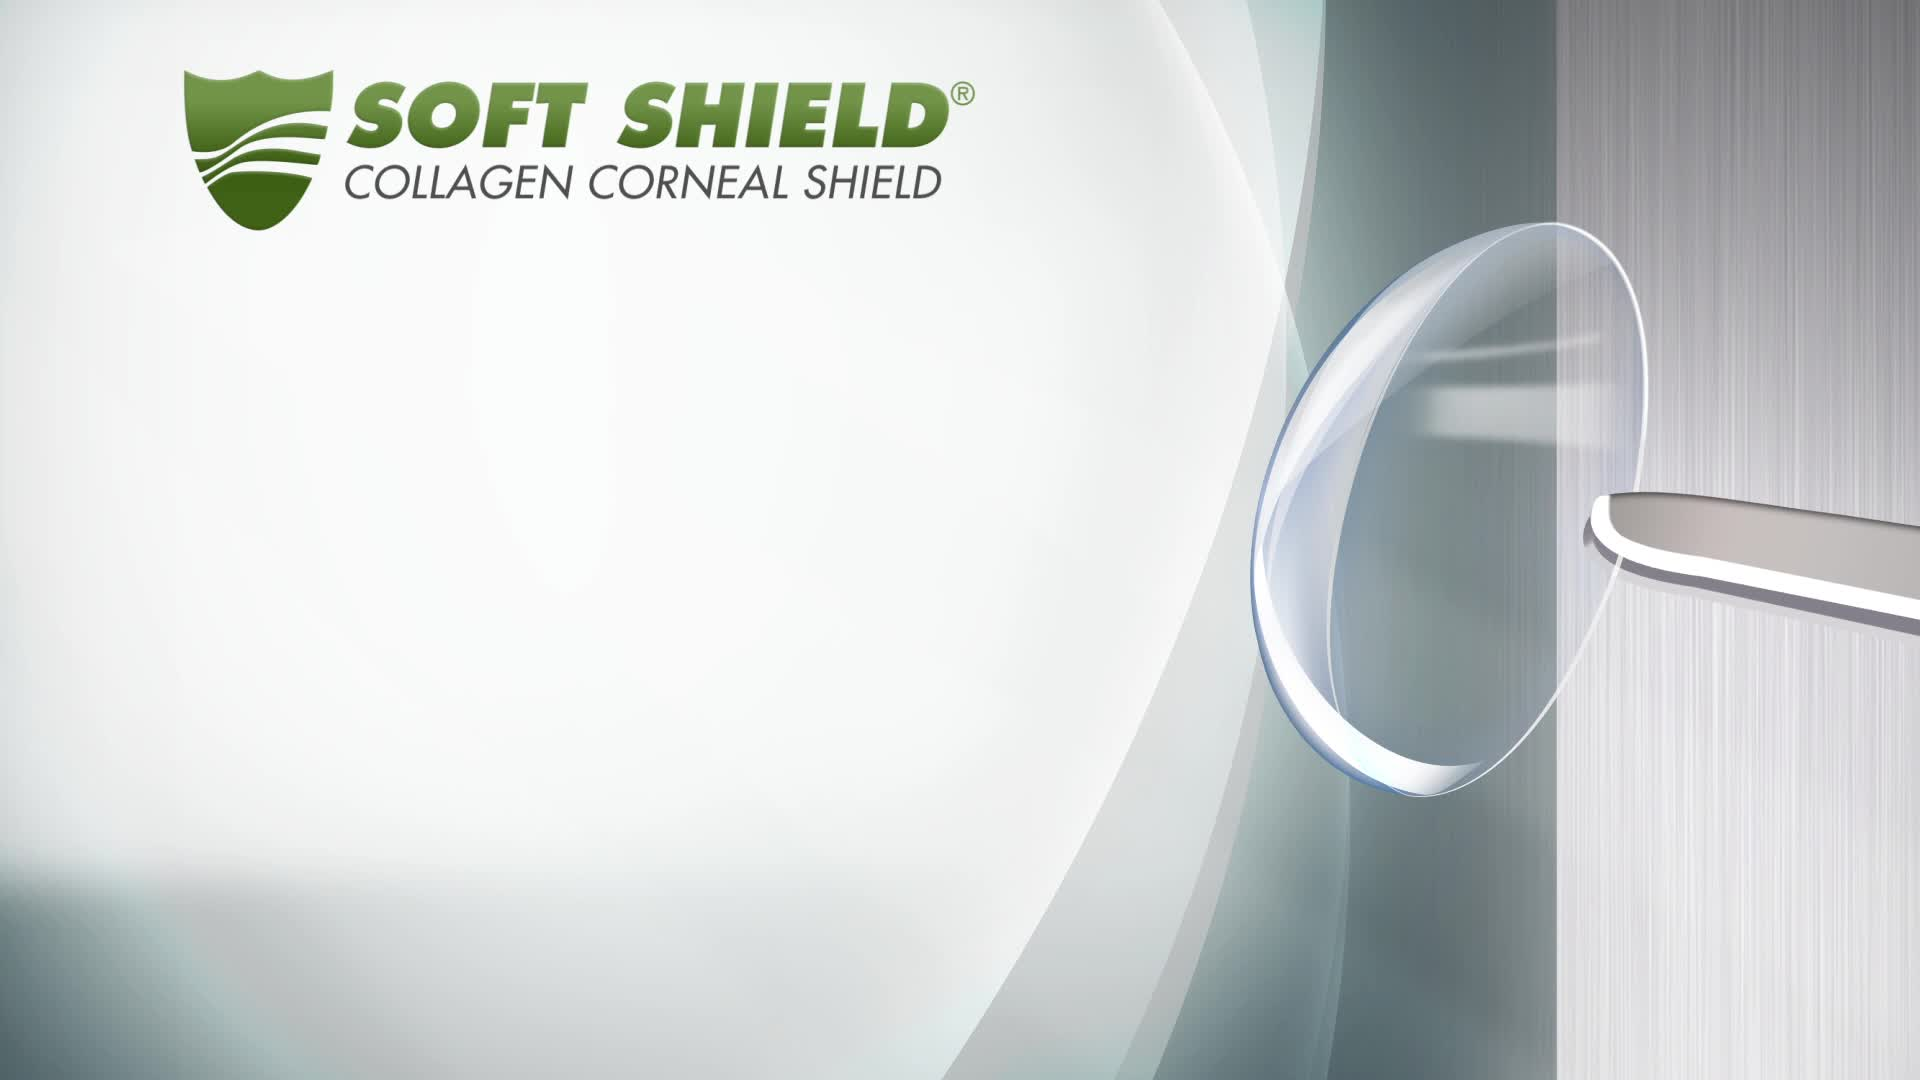 CE Mark Available for SOFT SHIELD® Collagen Shields Through OASIS® Medical Inc. - Indicated for ocular surface protection following surgery, injection, and traumatic or non-traumatic corneal conditions. Available in four dissolution rates: QS, 12, 24, and 72 hour.